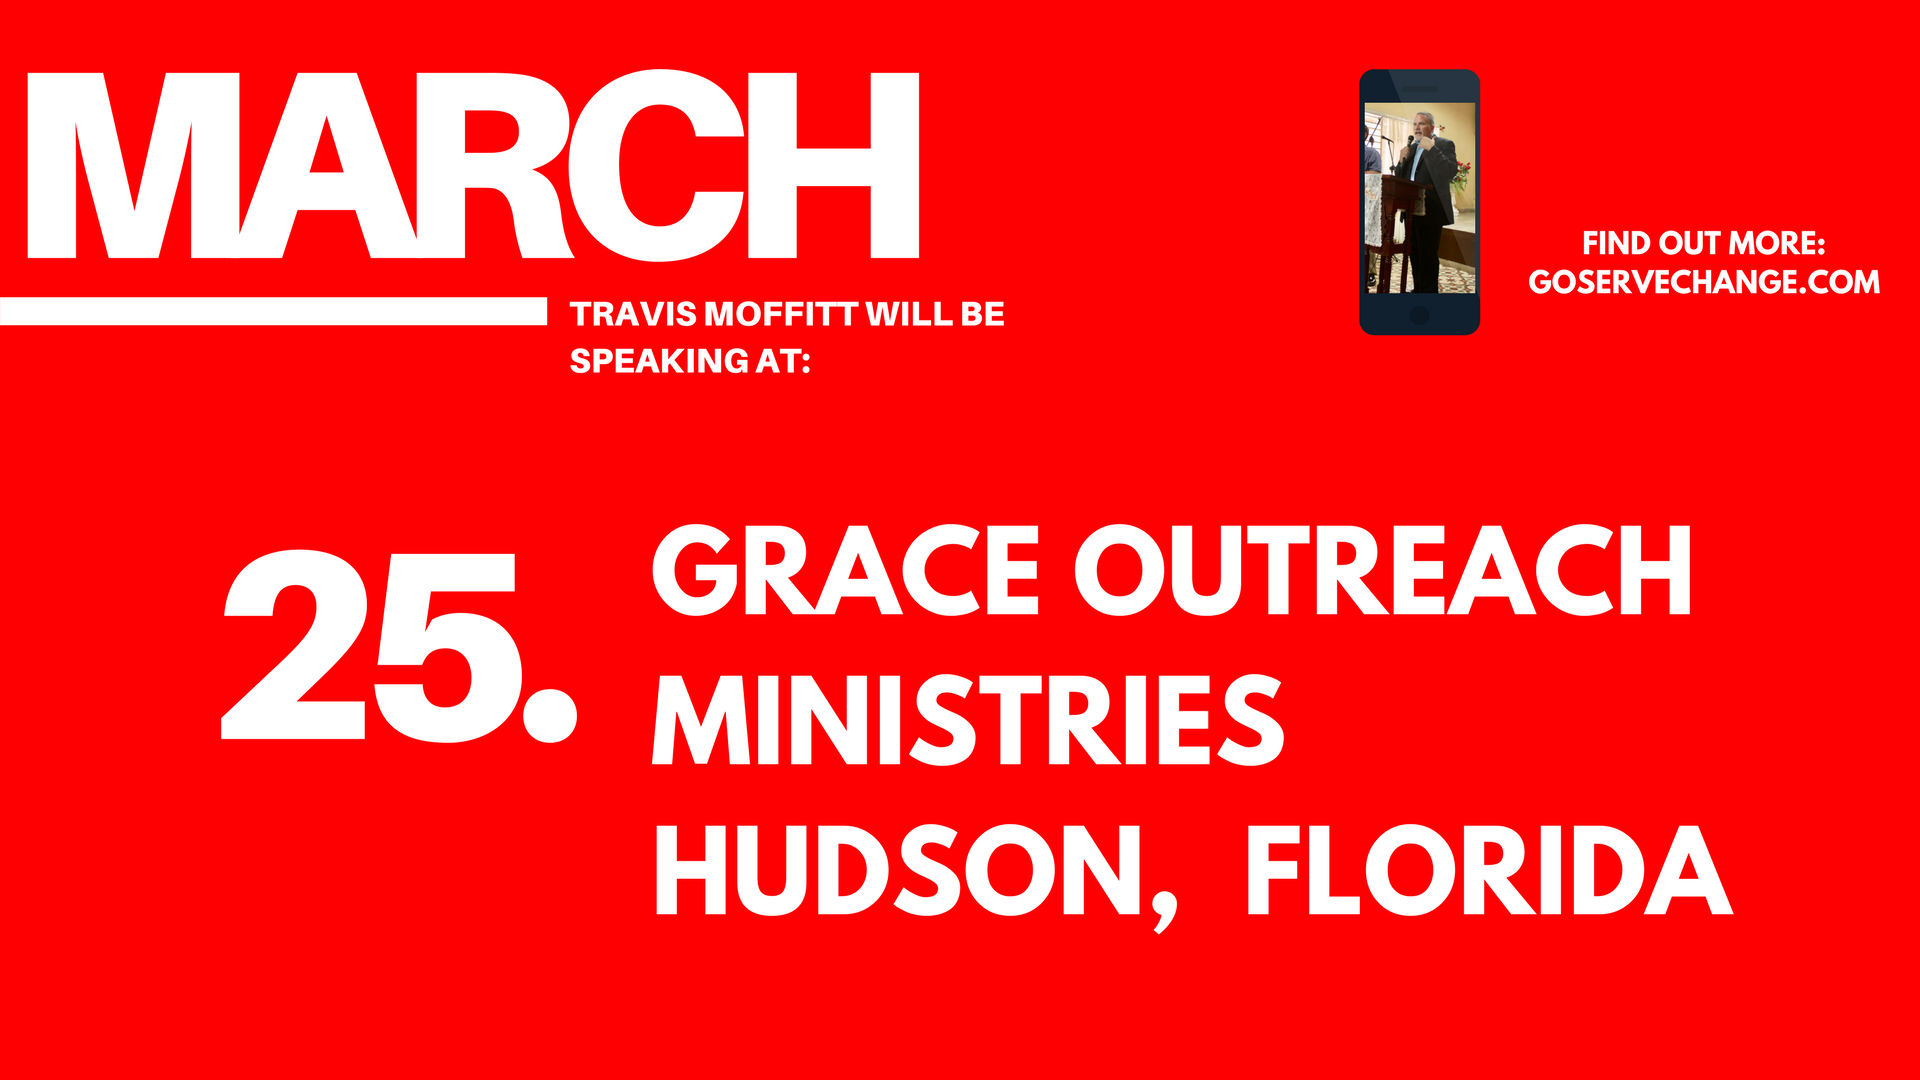 Travis Moffitt will be speaking at Grace Outreach Ministries Hudson, Florida.png